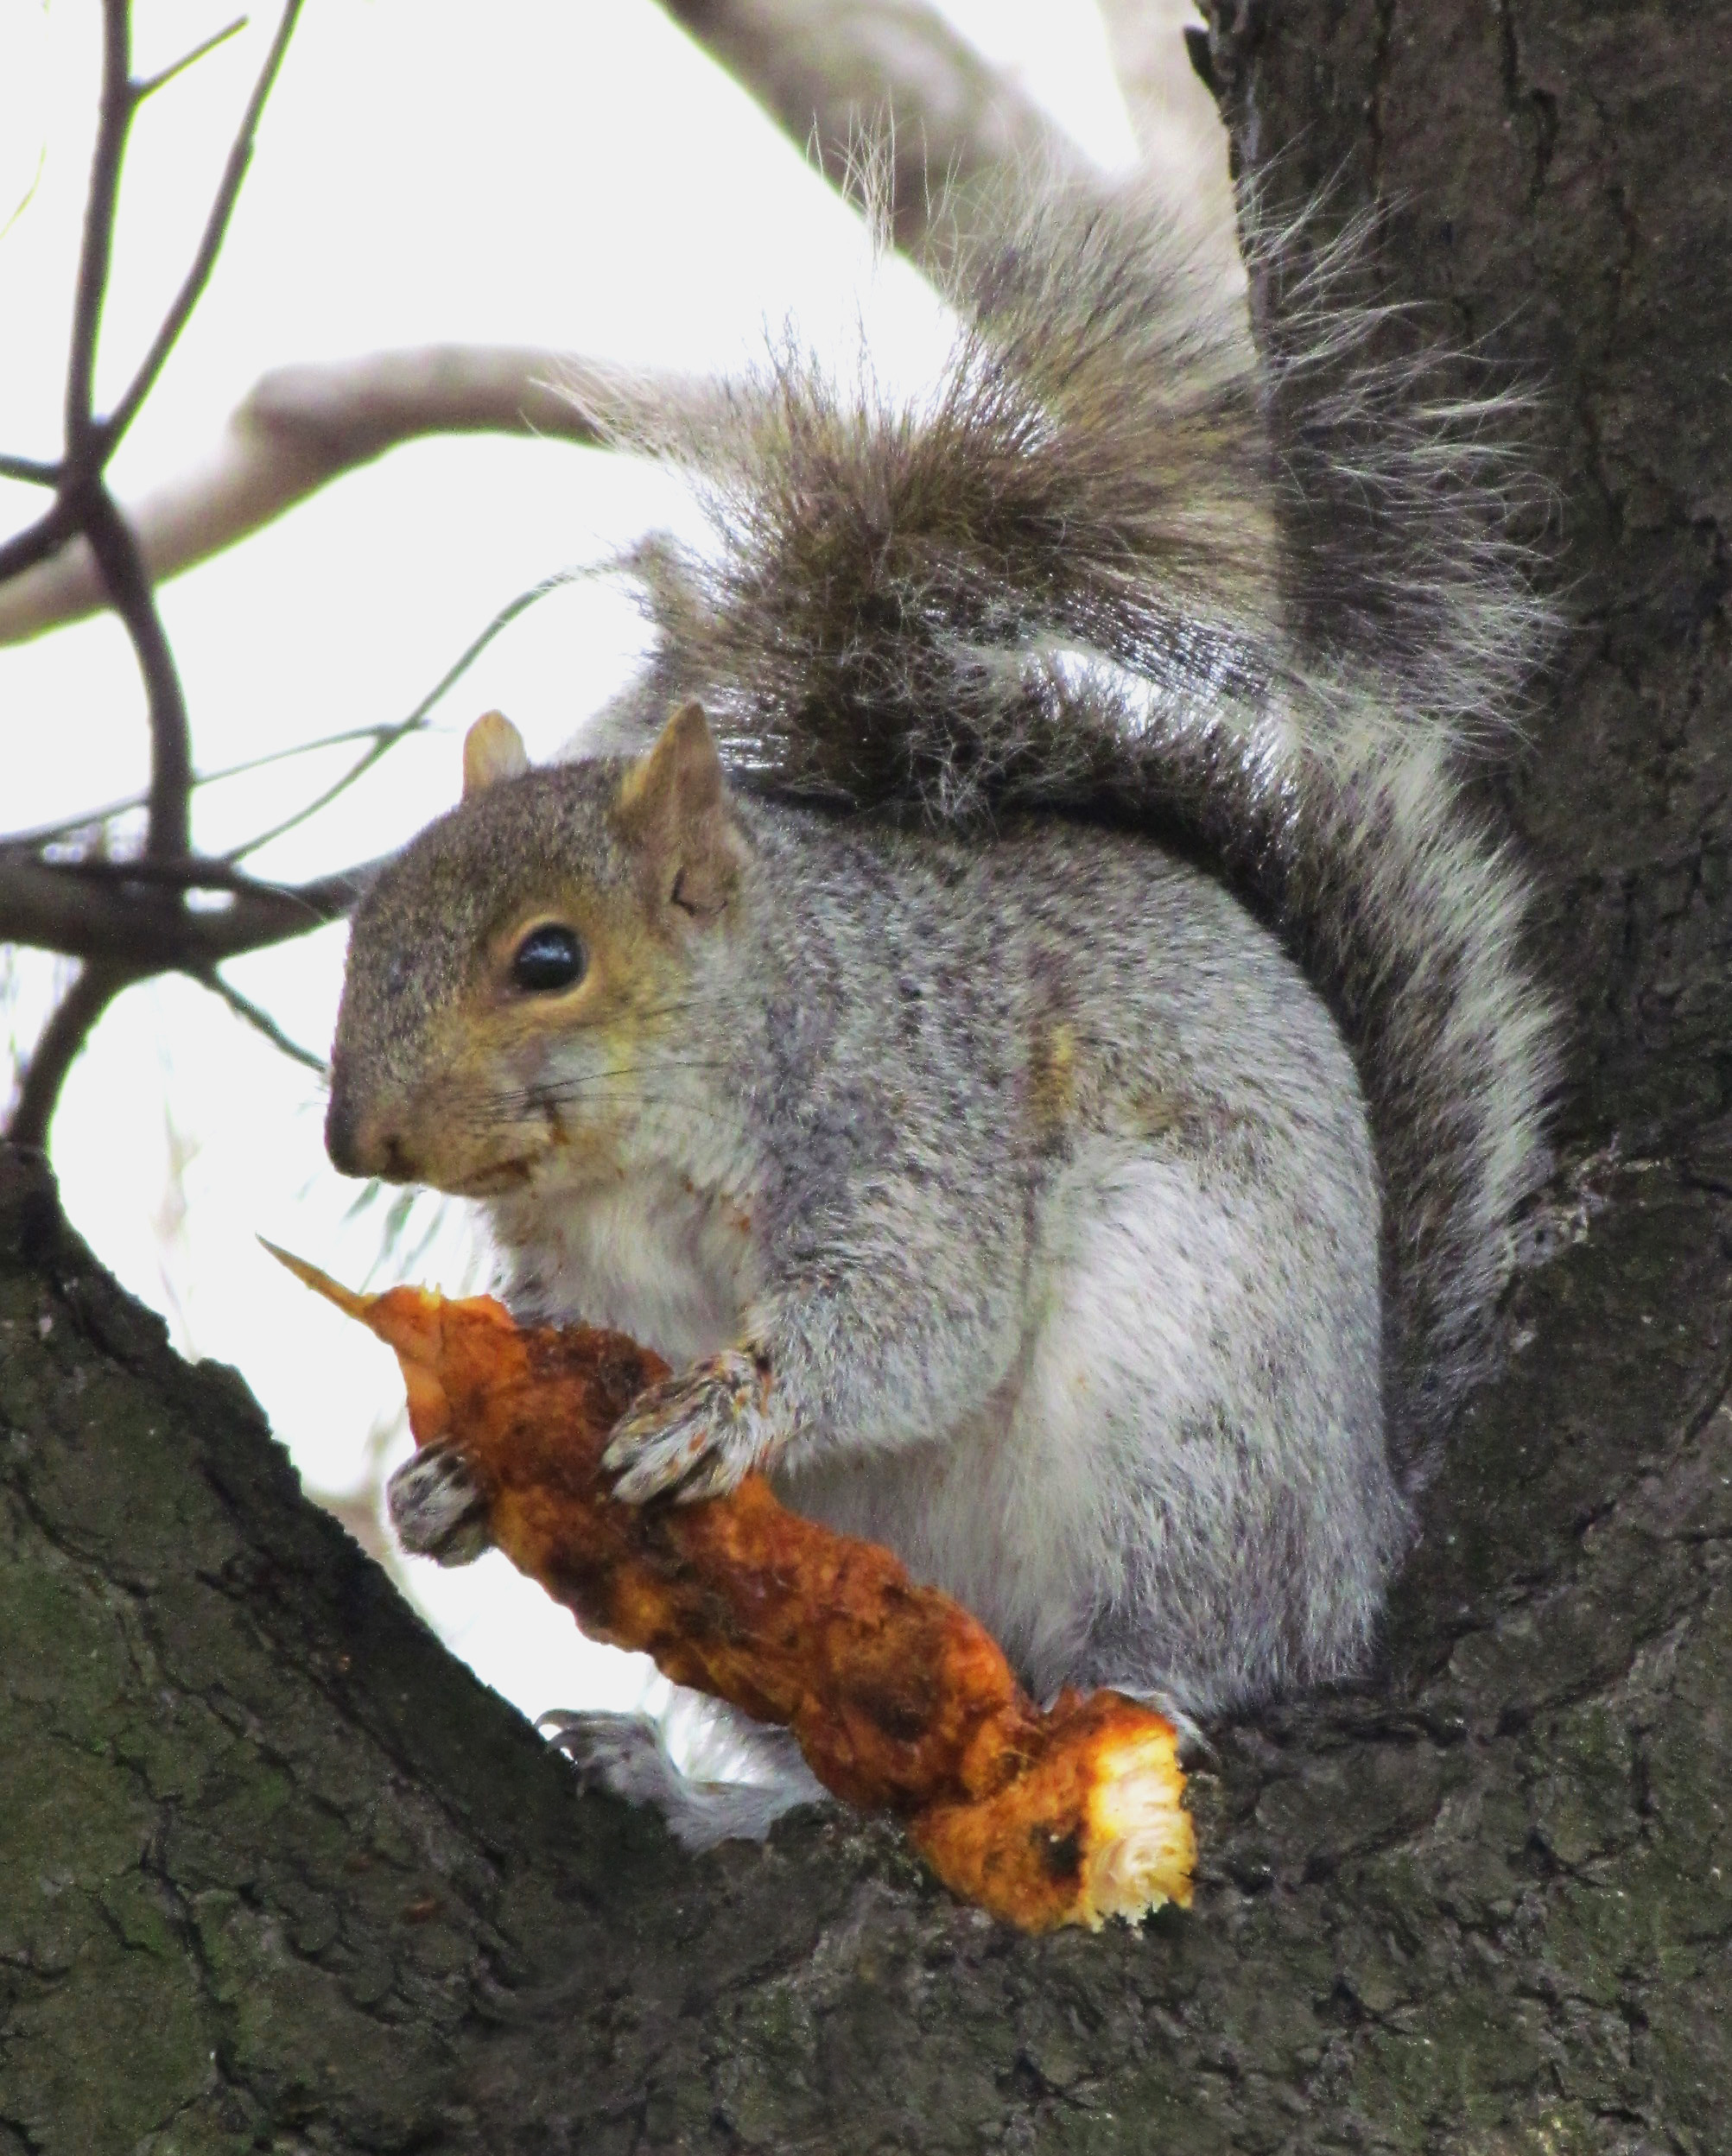 Prize Catch Of The Day For Philly Squirrel